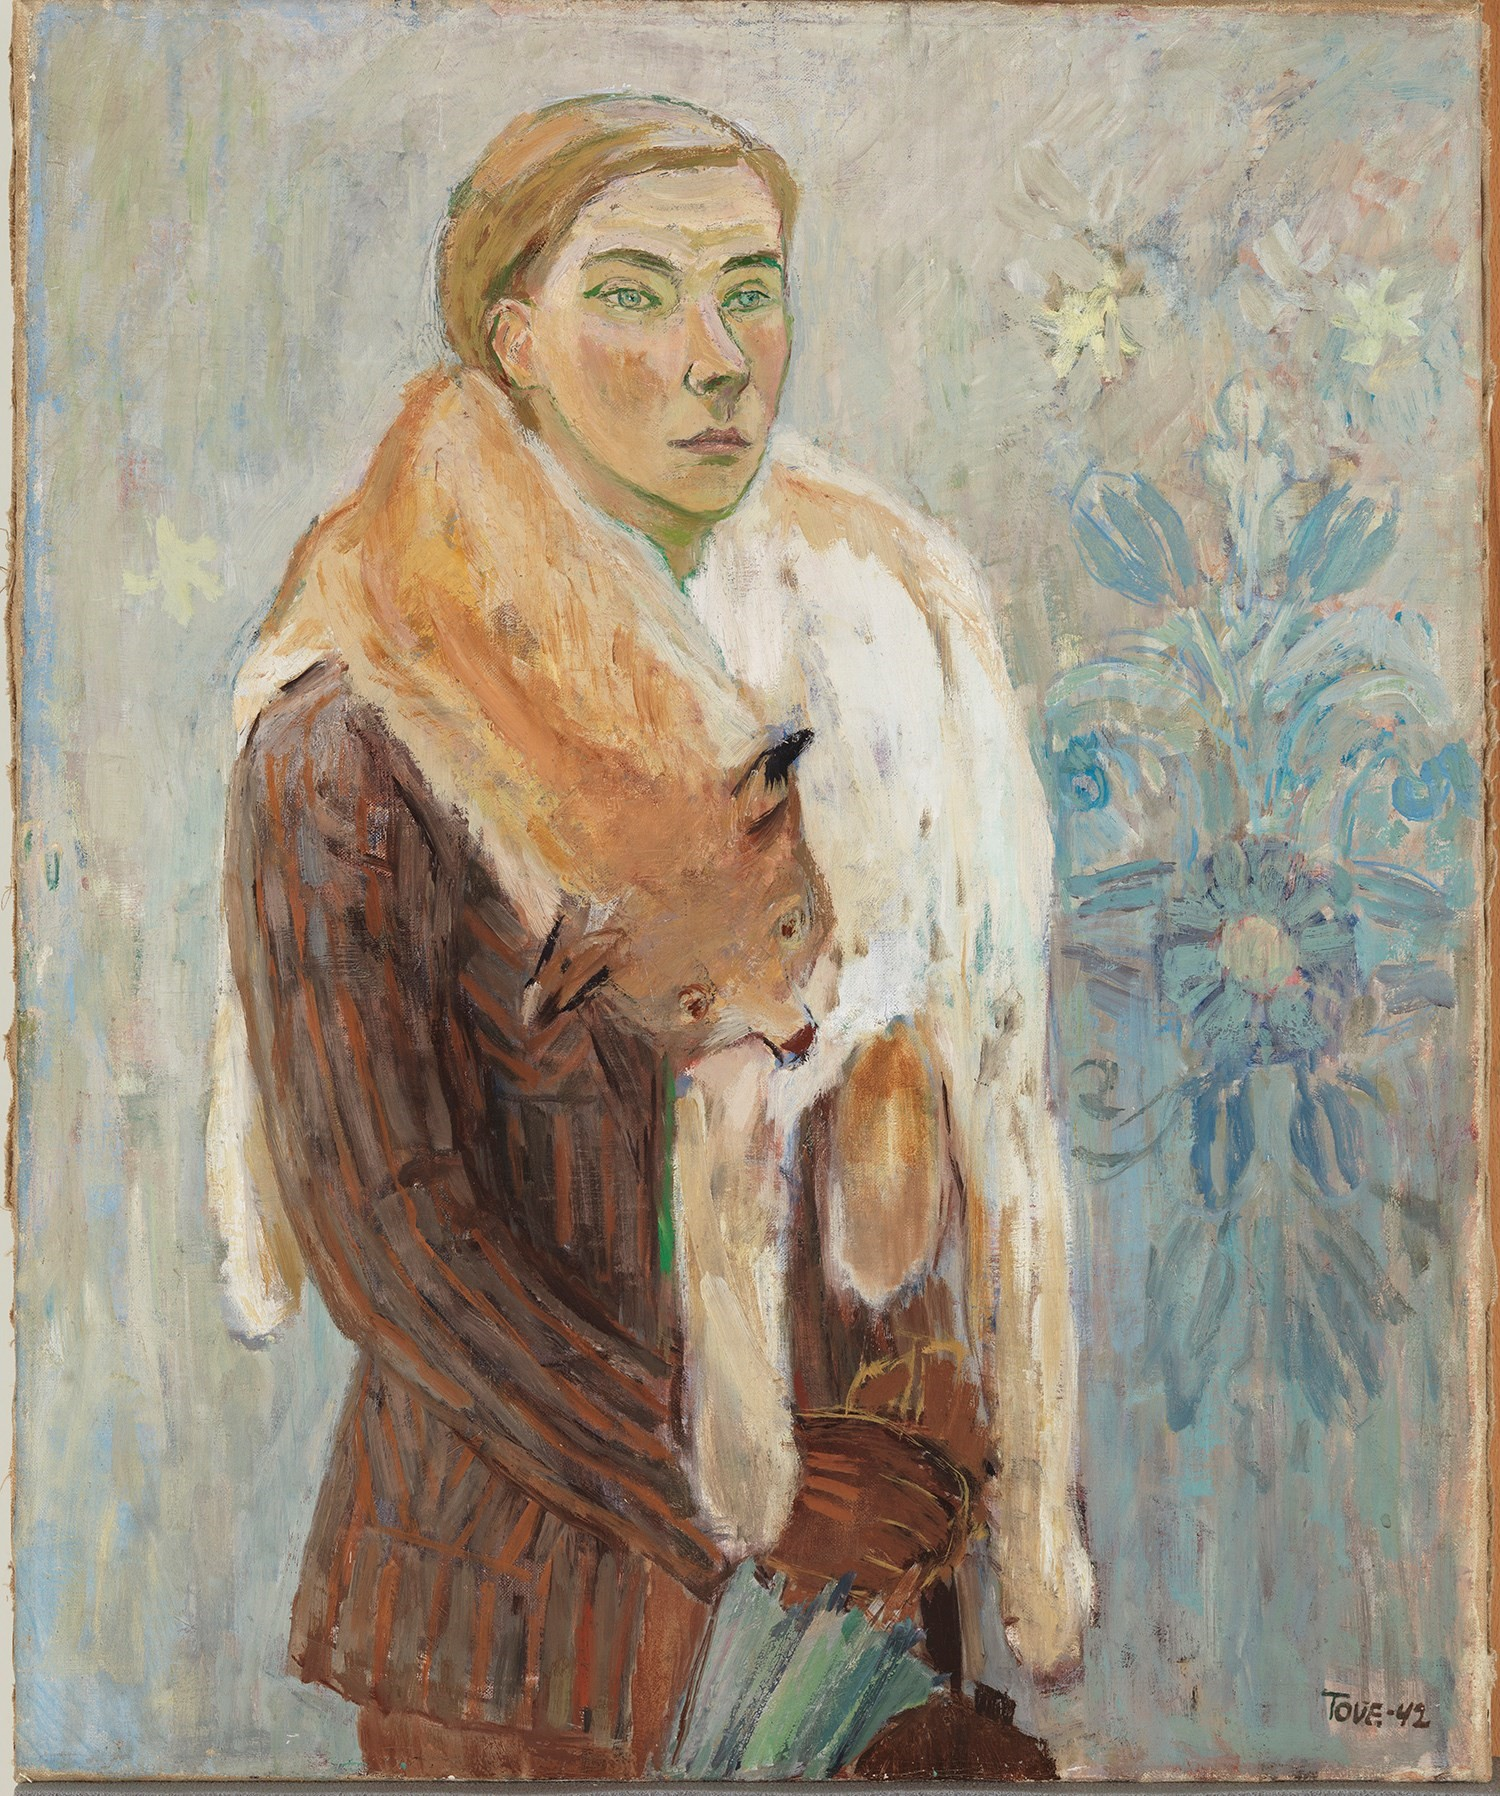 Lynx Boa (Self-Portrait), 1942